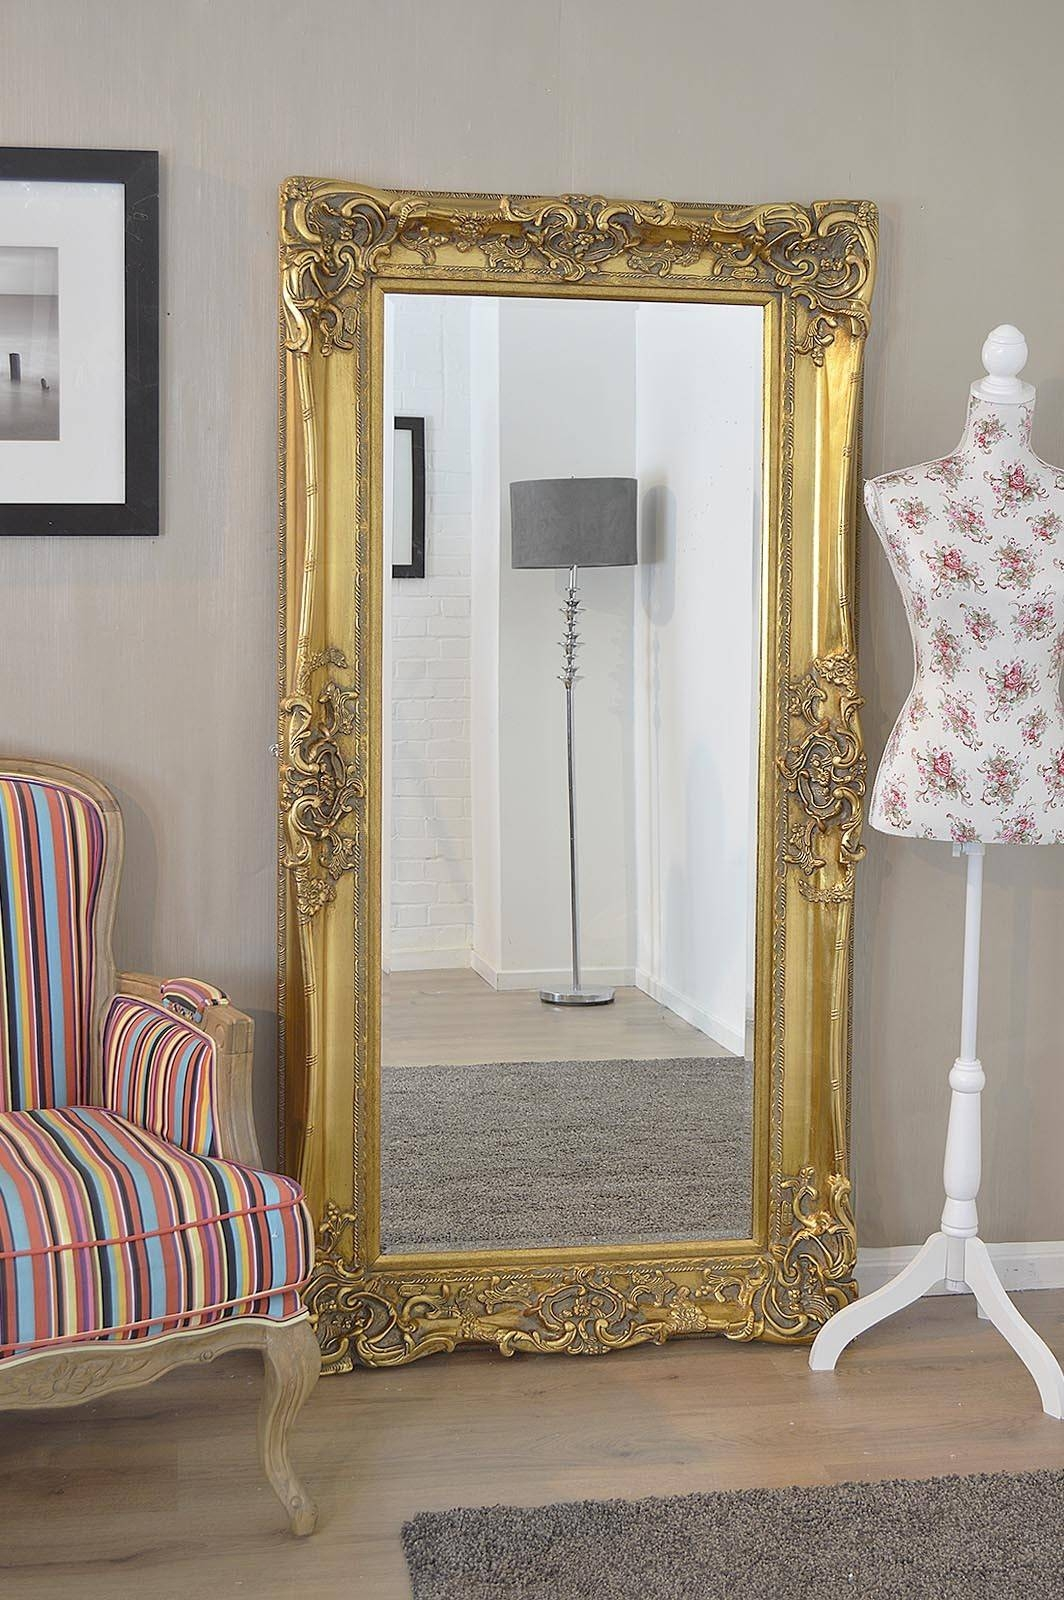 Pretty Vintage French Mirror And Antique Floor In Big Gold Mirrors Photo 3